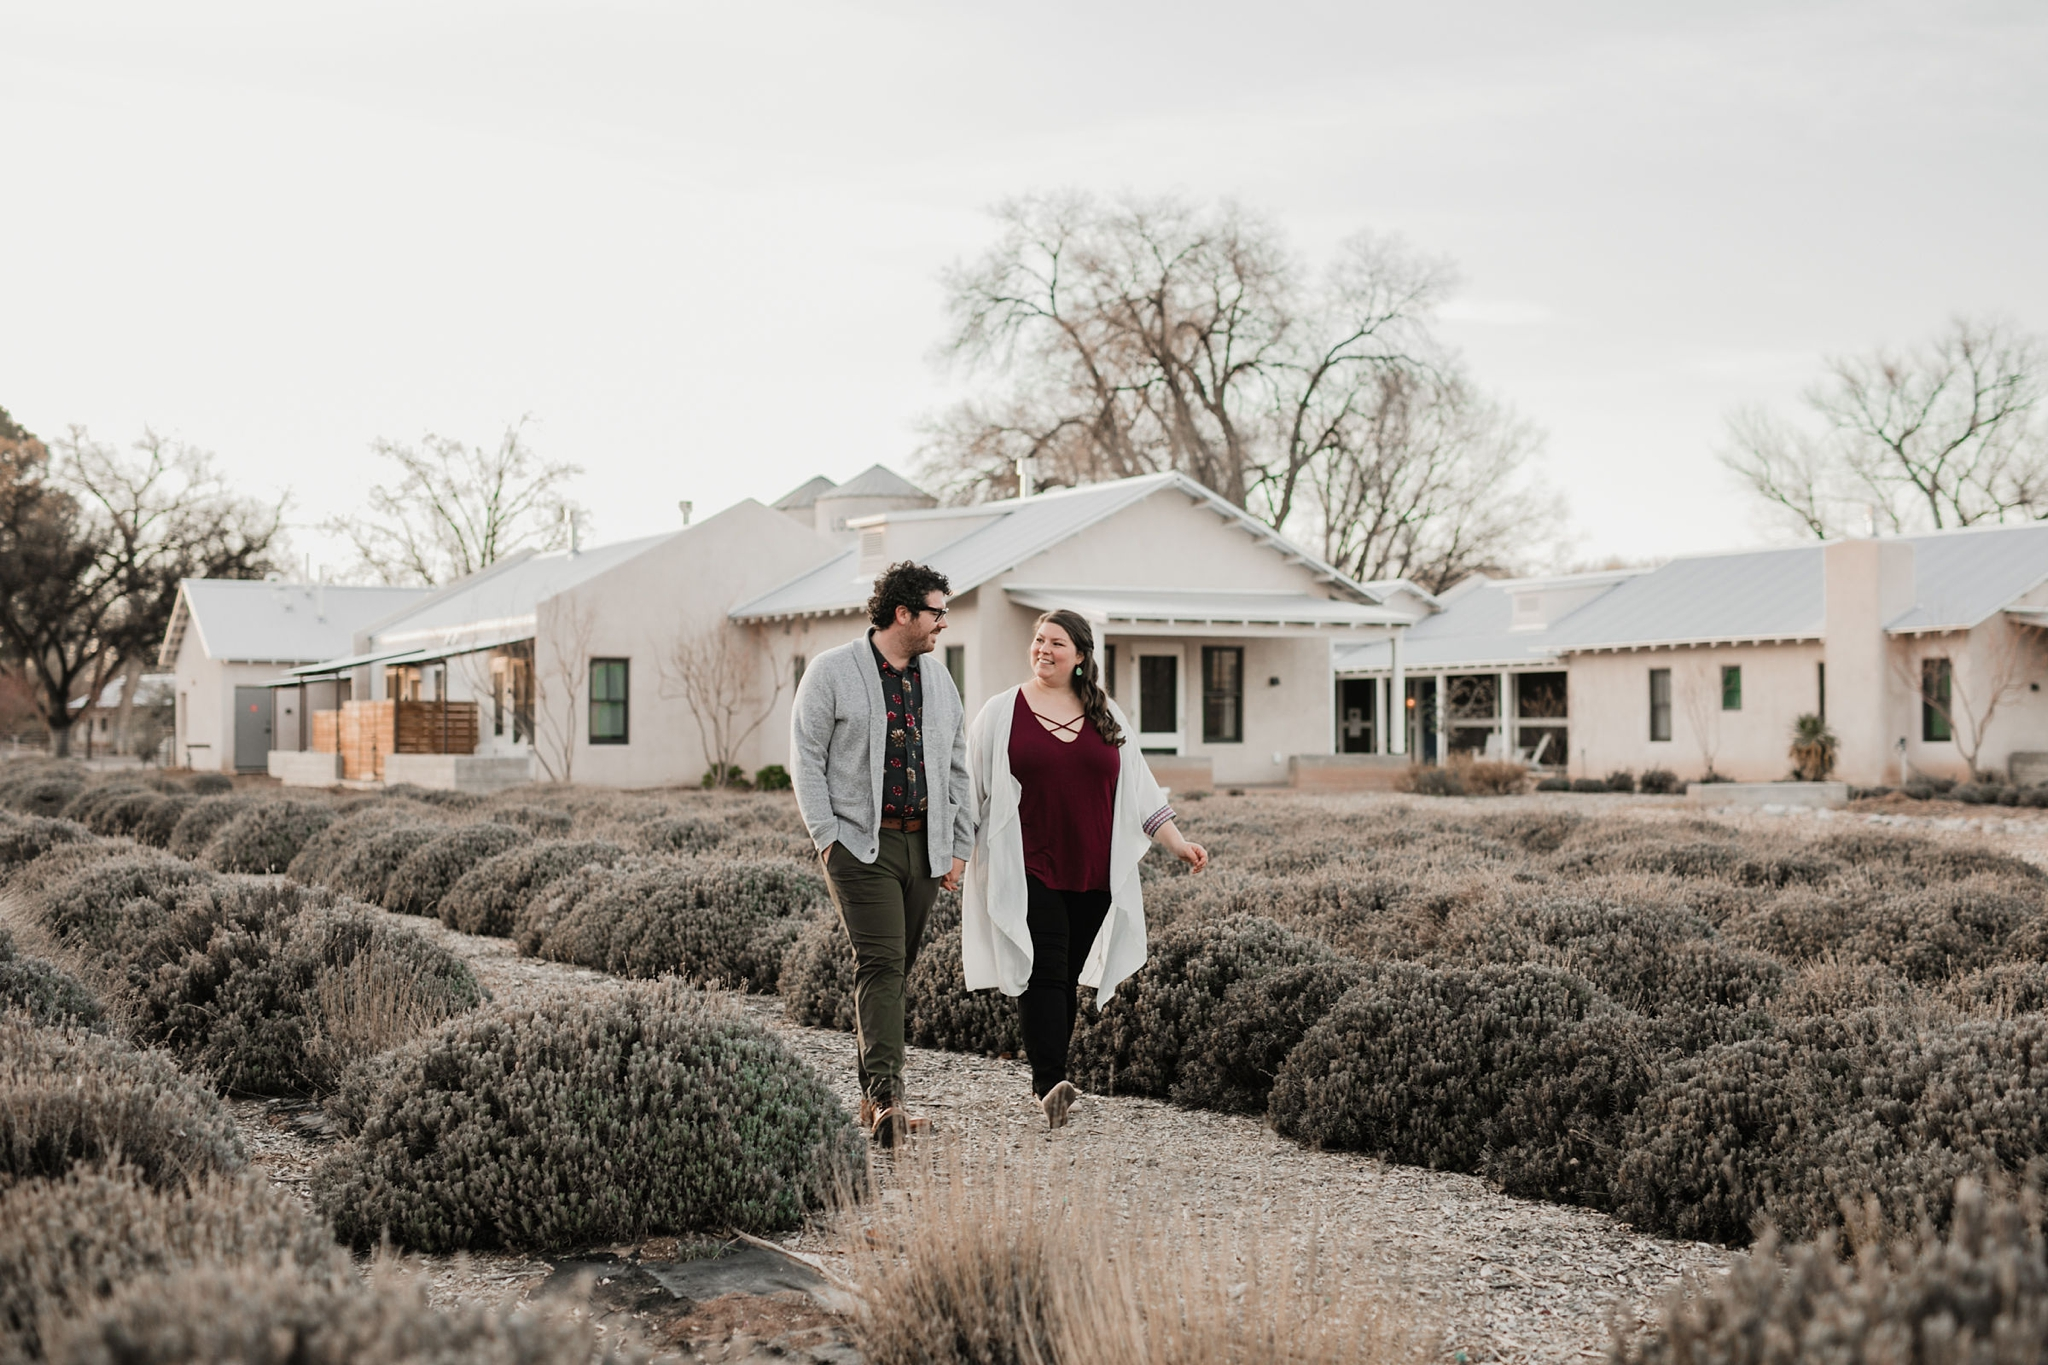 Alicia+lucia+photography+-+albuquerque+wedding+photographer+-+santa+fe+wedding+photography+-+new+mexico+wedding+photographer+-+new+mexico+engagement+-+los+poblanos+engagement+-+spring+engagement_0004.jpg